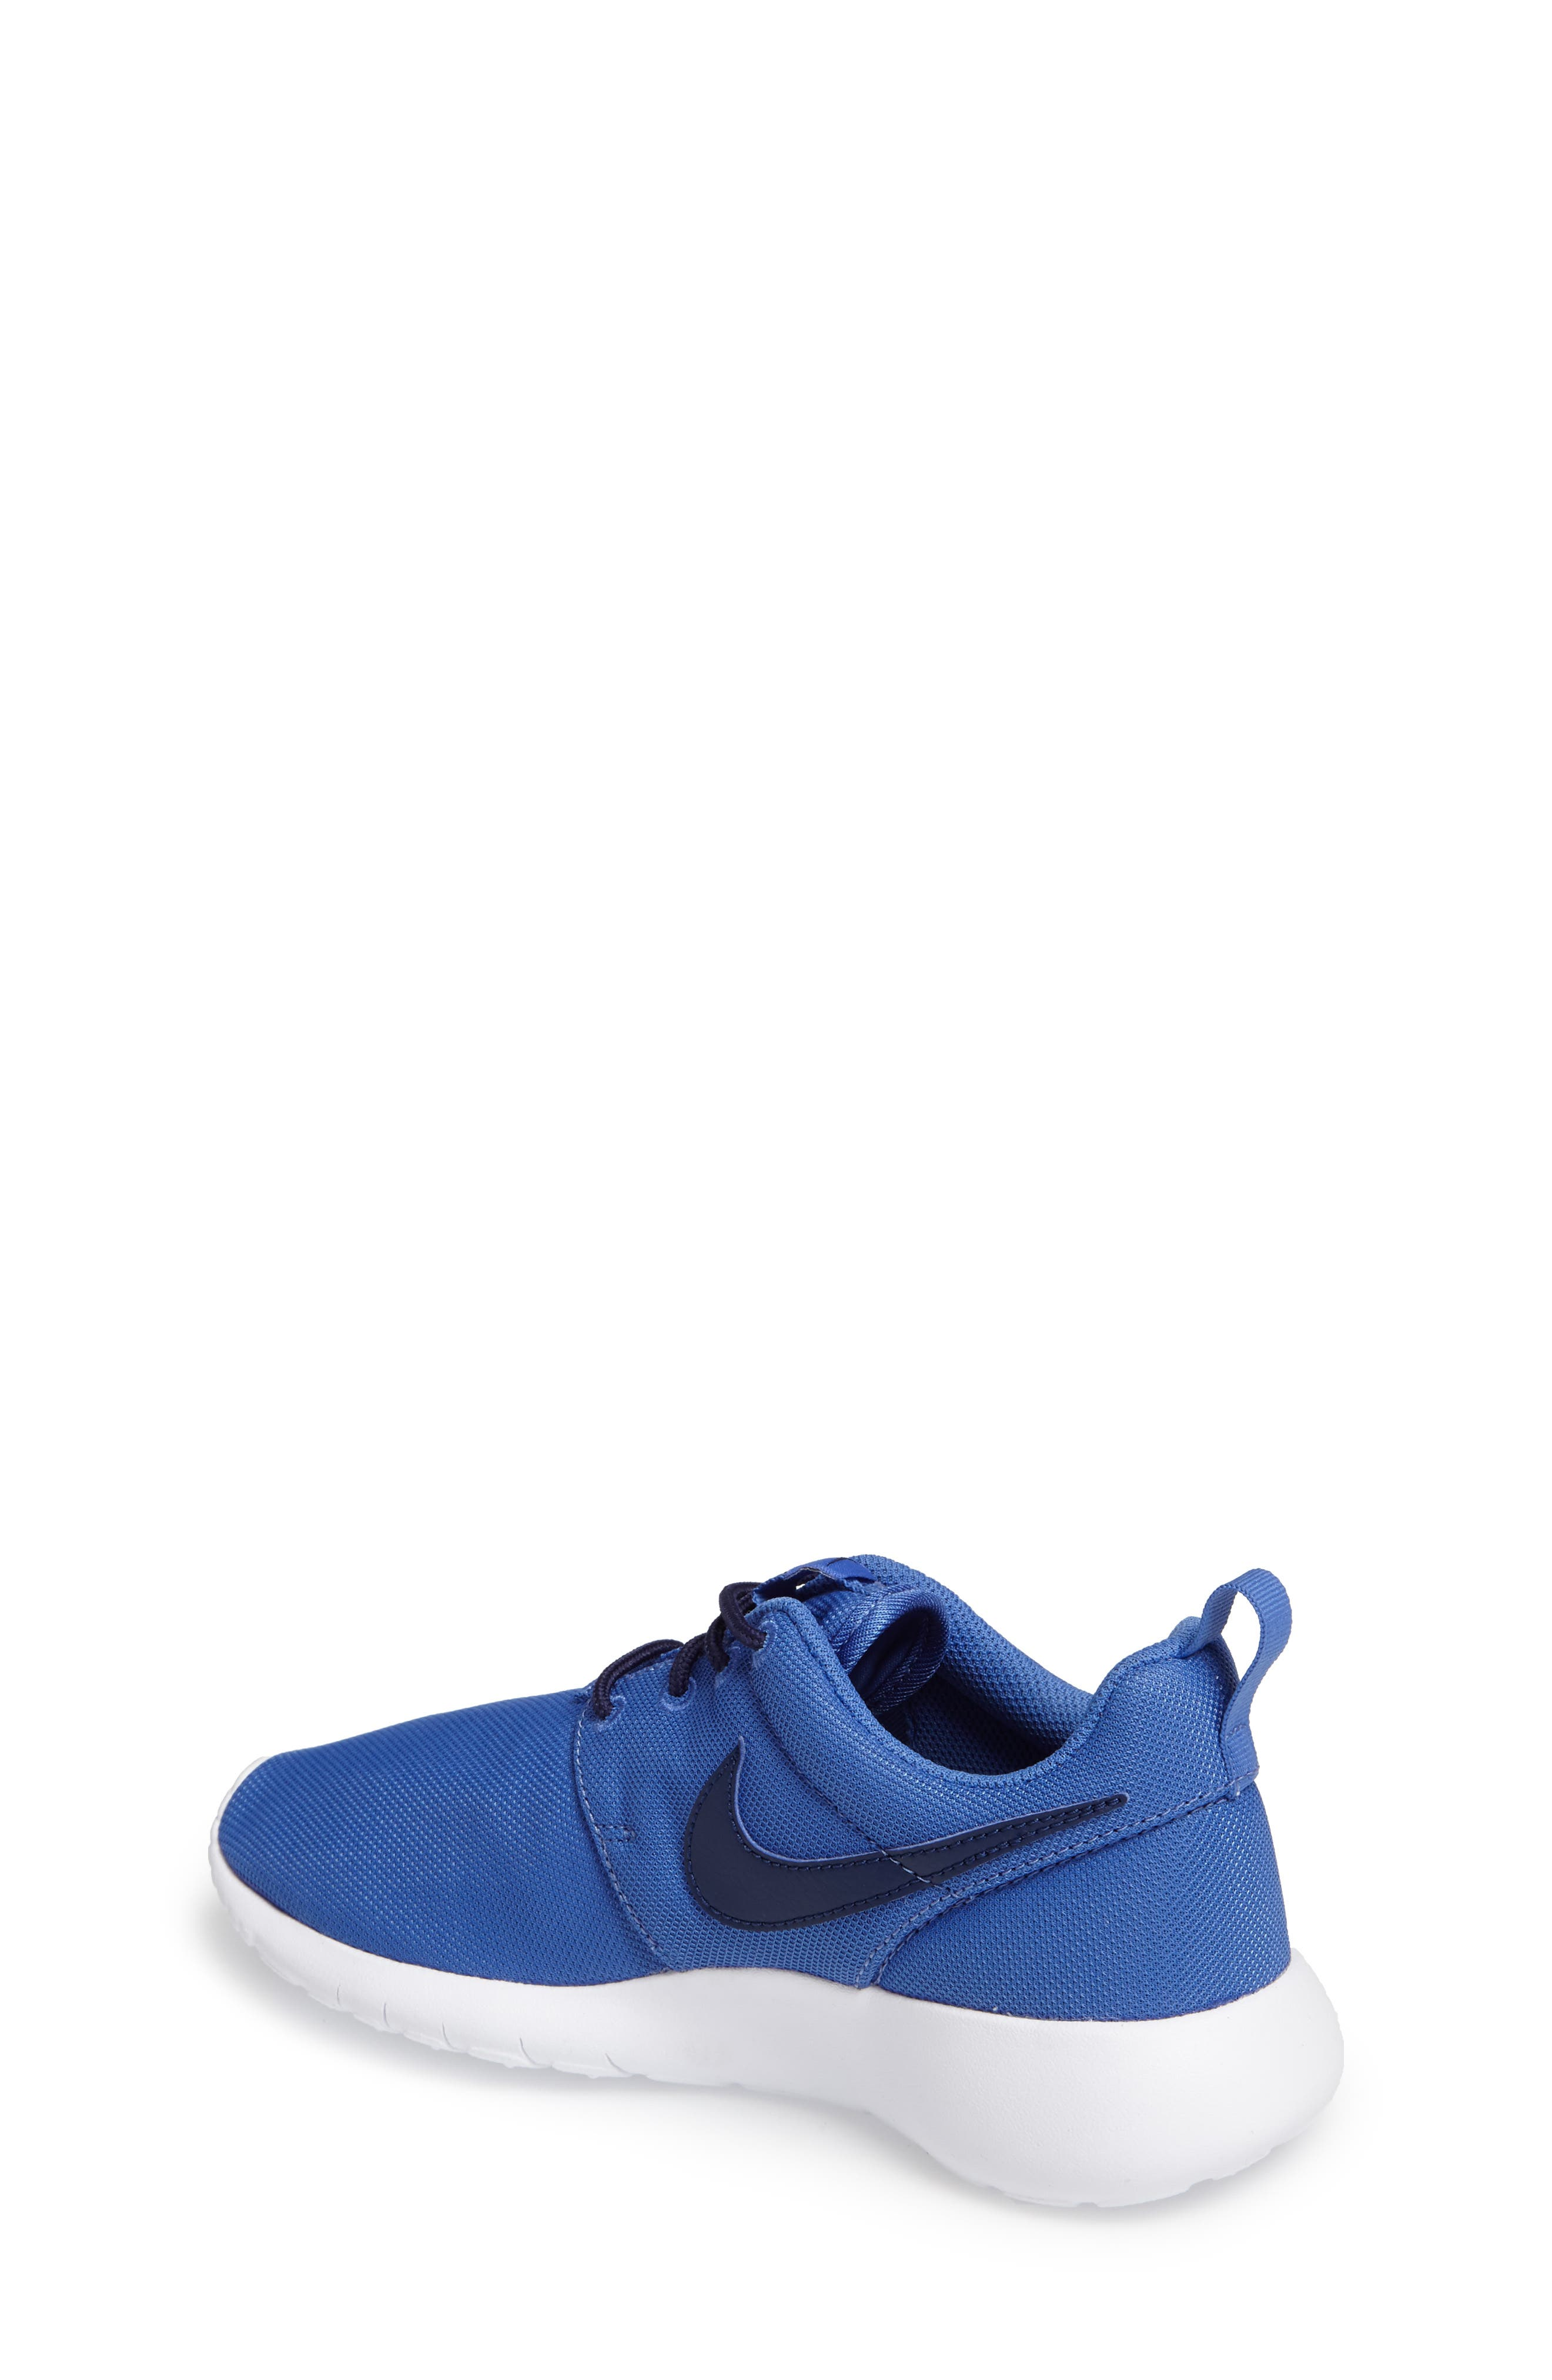 'Roshe Run' Sneaker,                             Alternate thumbnail 93, color,